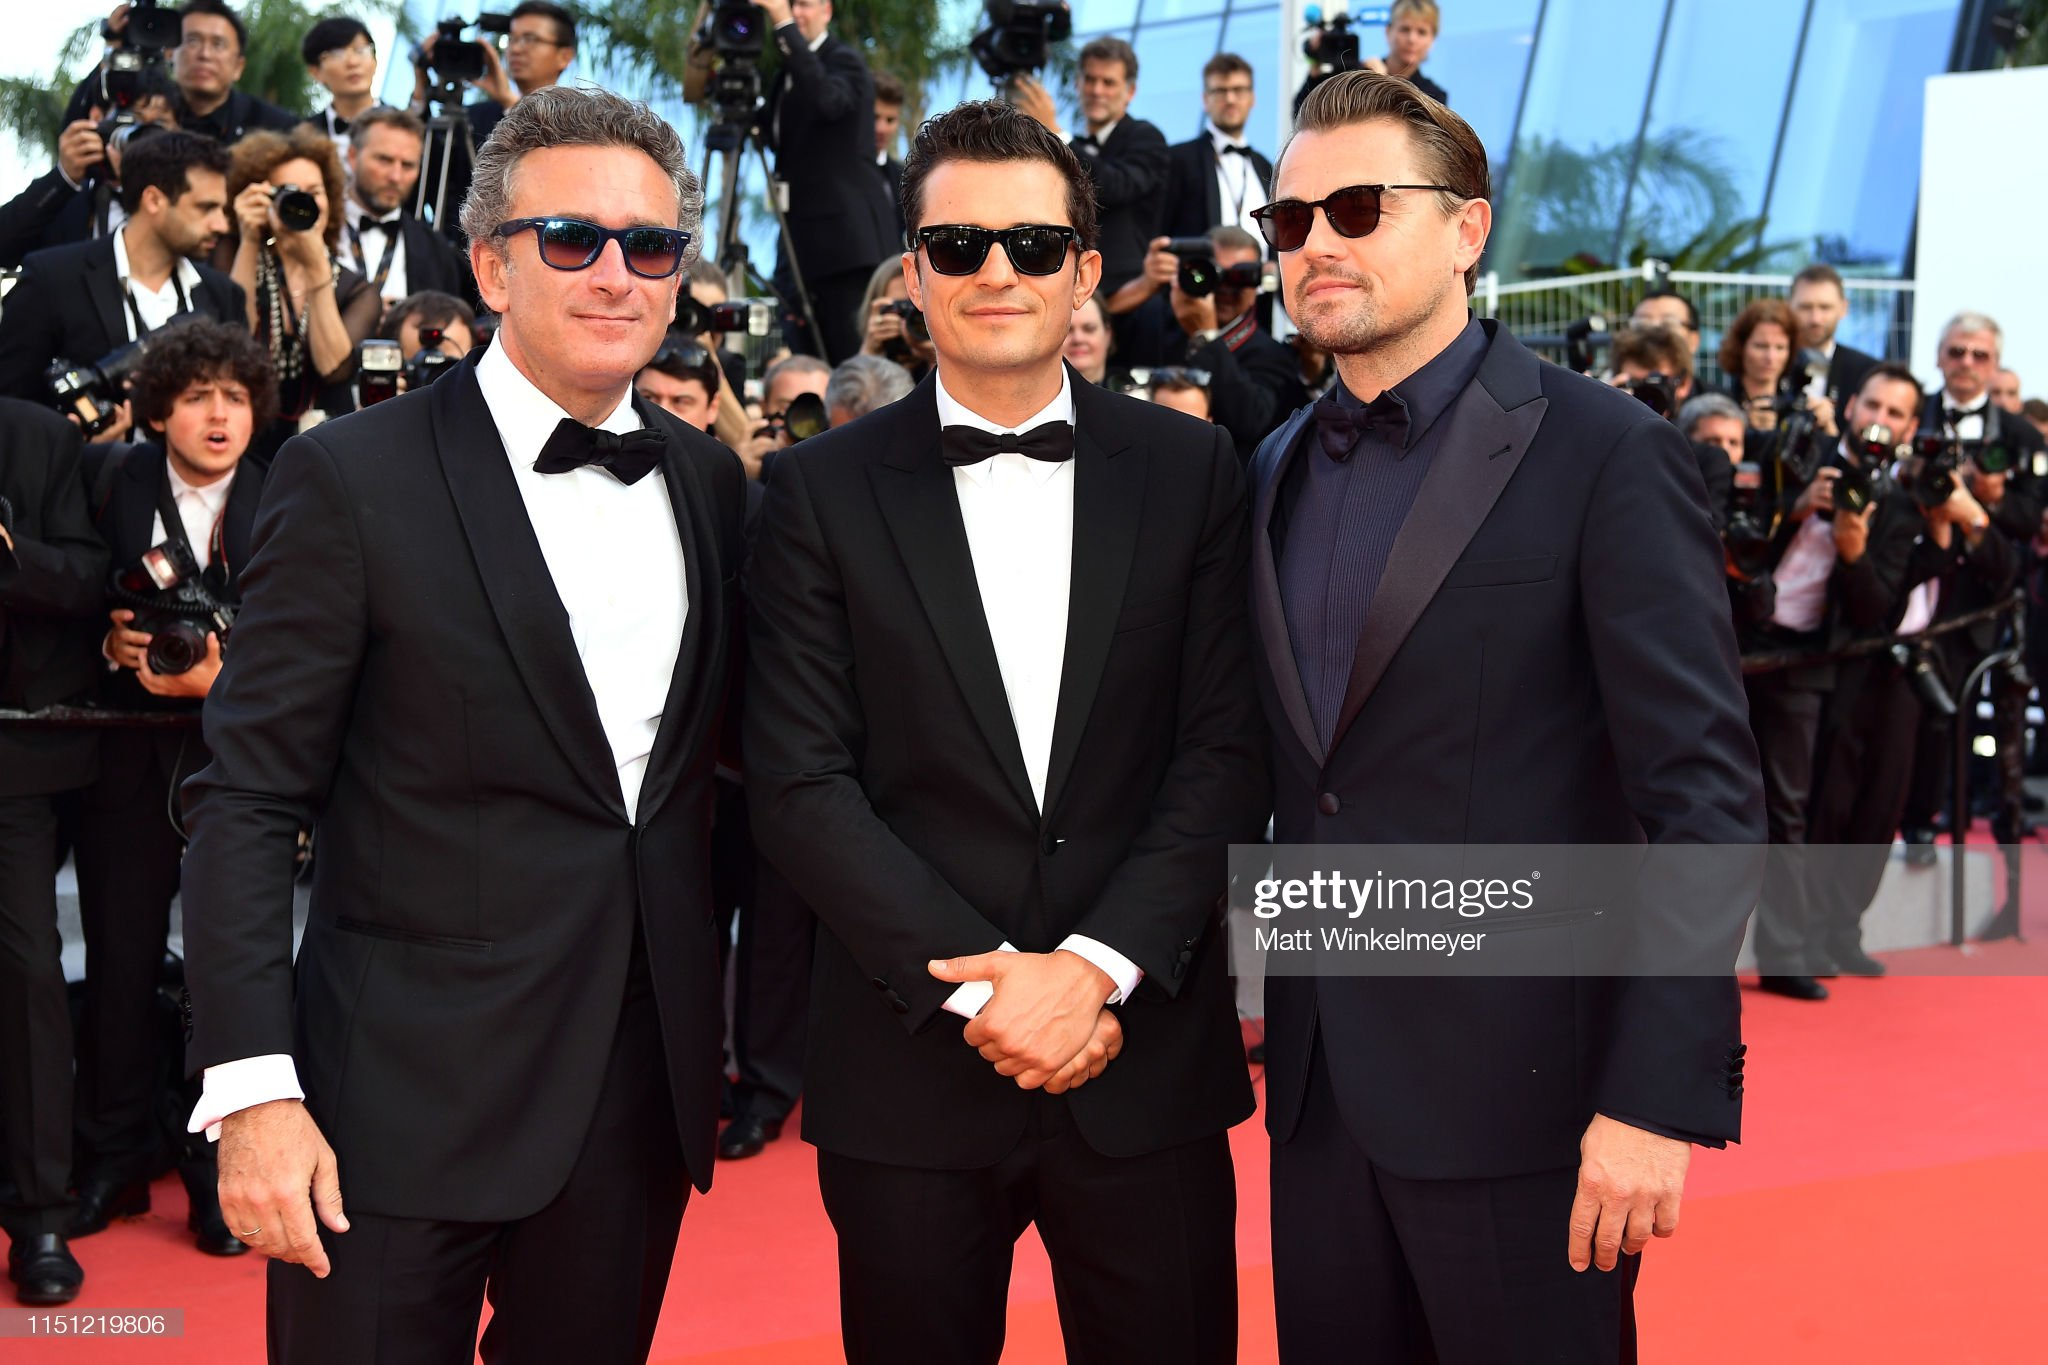 ¿Cuánto mide Alejandro Agag? - Altura - Real height Alejandro-agag-orlando-bloom-and-leonardo-dicaprio-attend-the-of-the-picture-id1151219806?s=2048x2048